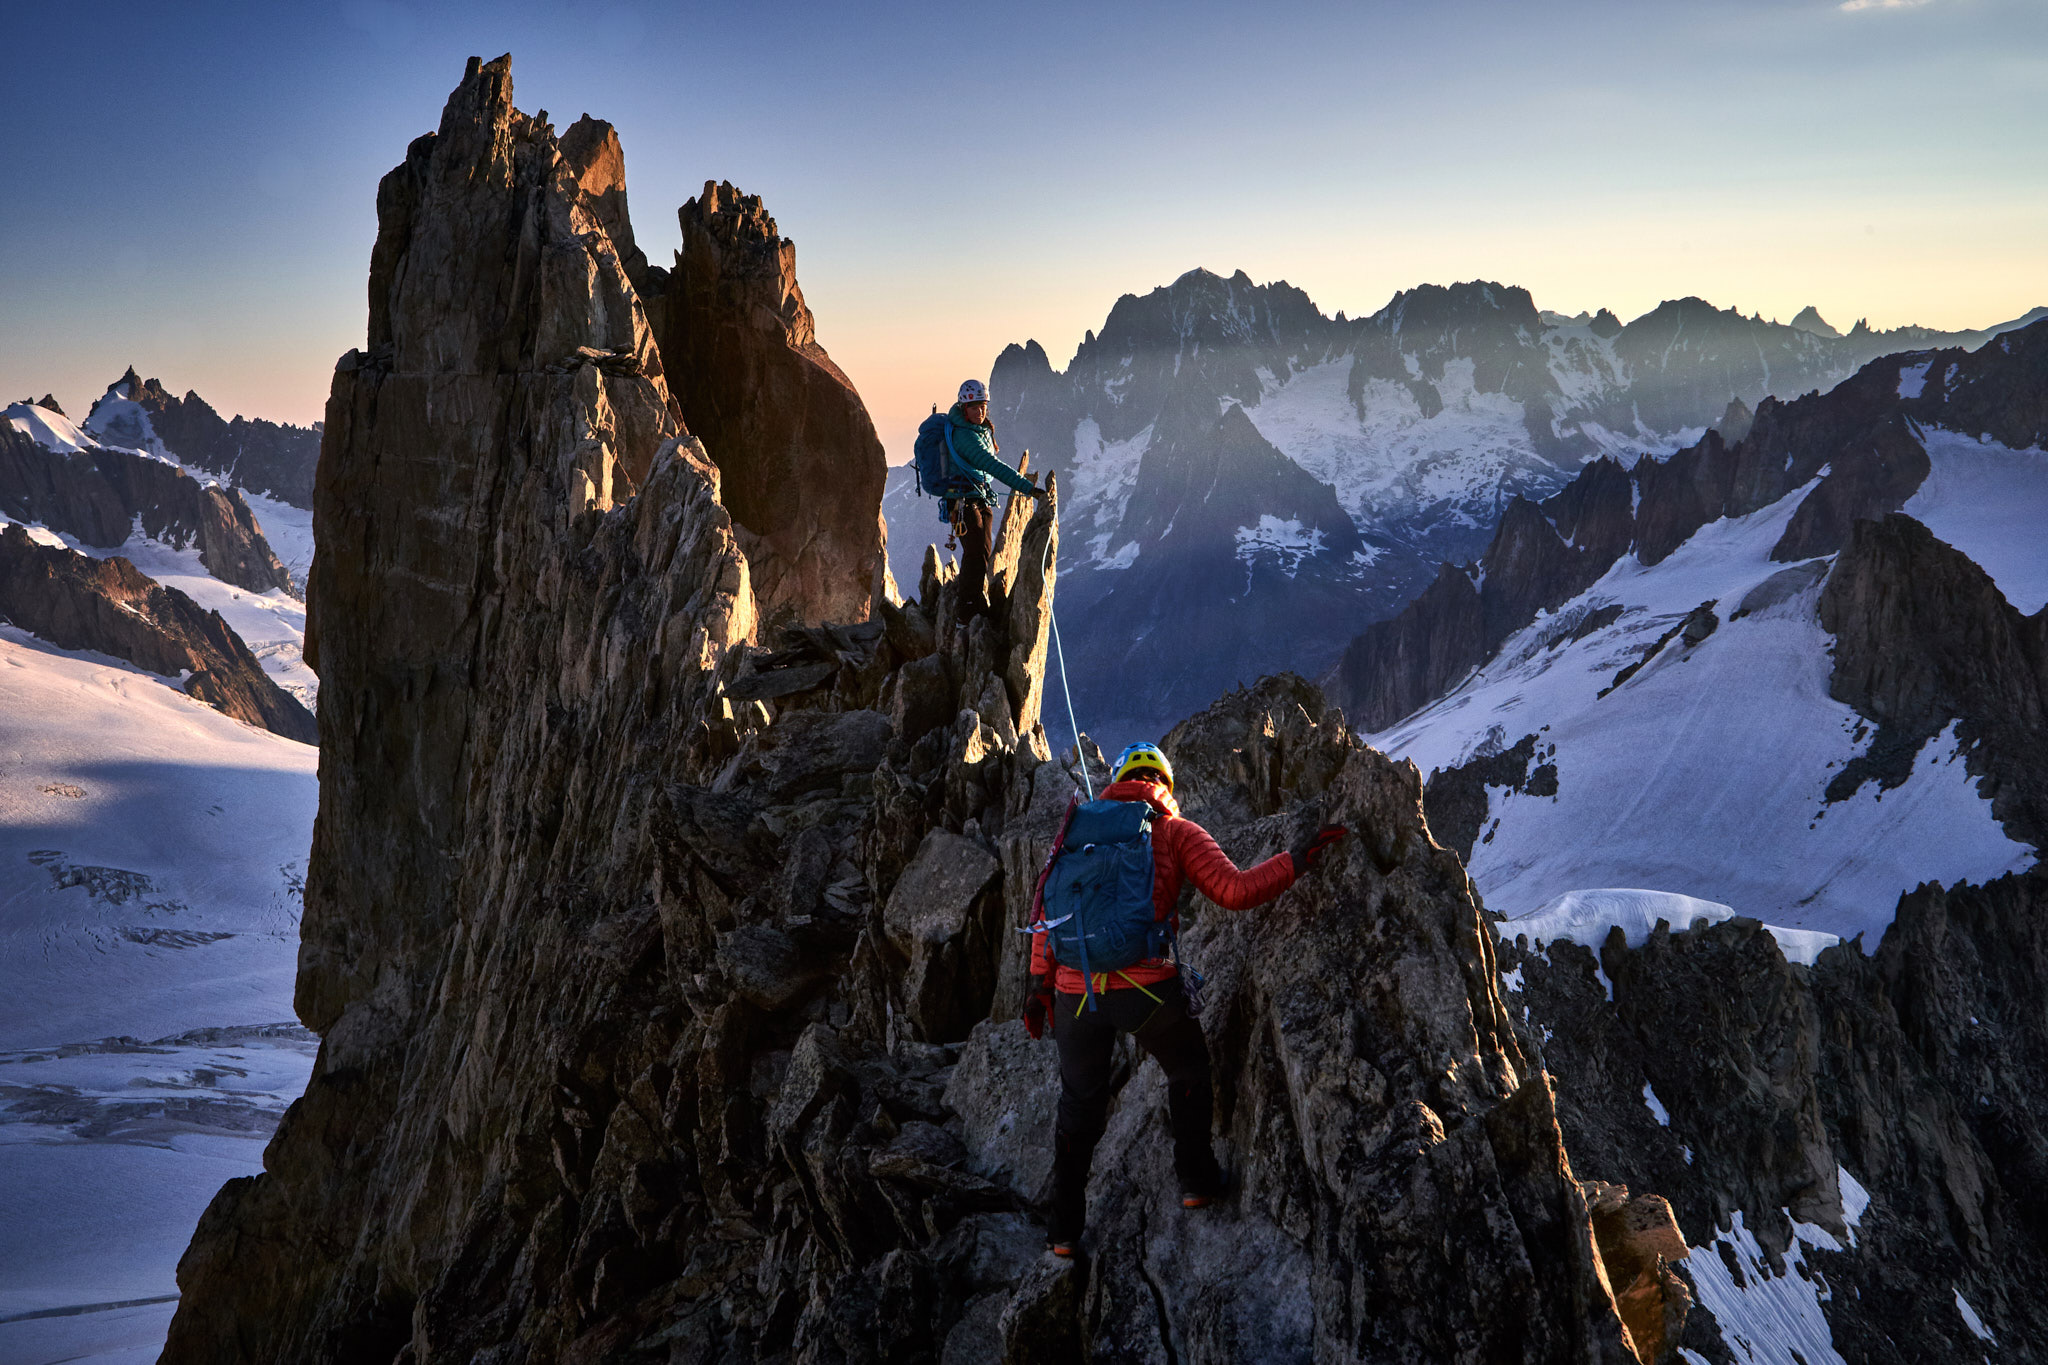 Sunrise on the Aiguille d'Entrèves